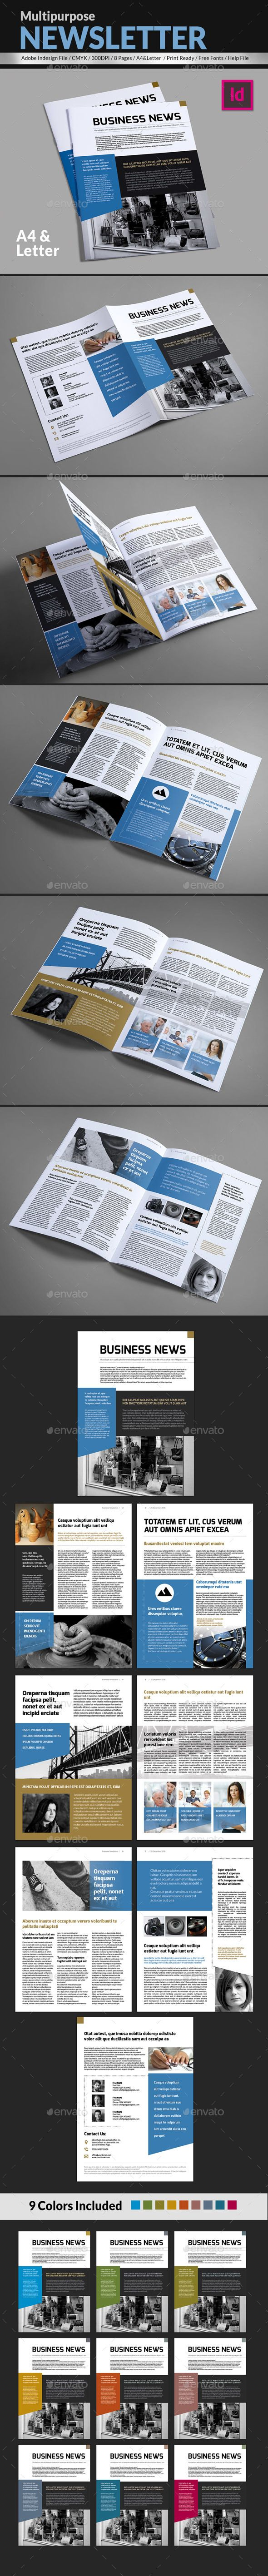 Business News Multipurpose Newsleter Template 1083